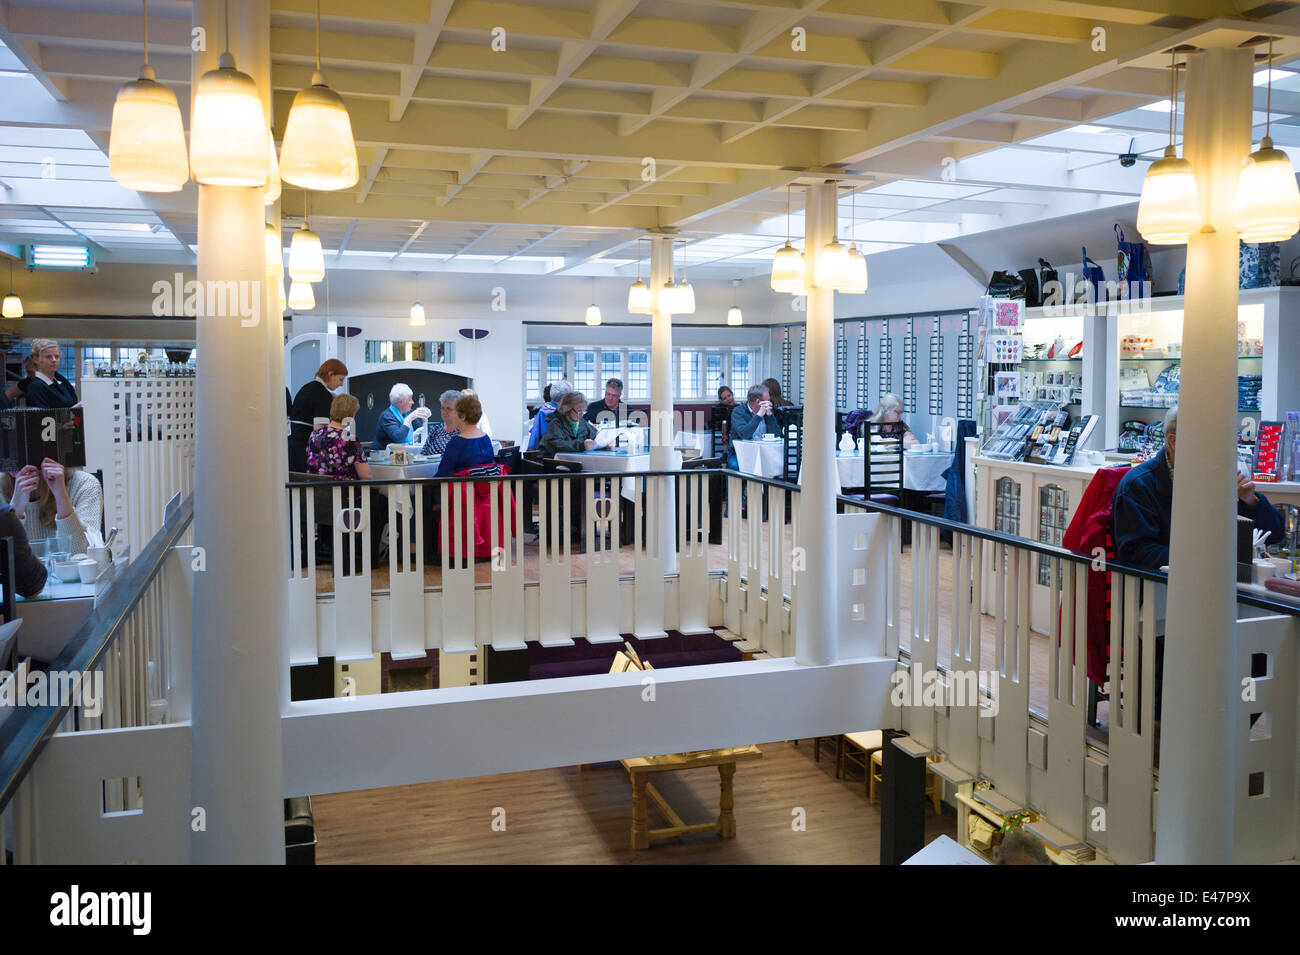 Customers in the Willow Tearooms and Gift Shop designed by Charles Rennie Mackintosh, Sauciehall Street, Glasgow, - Stock Image